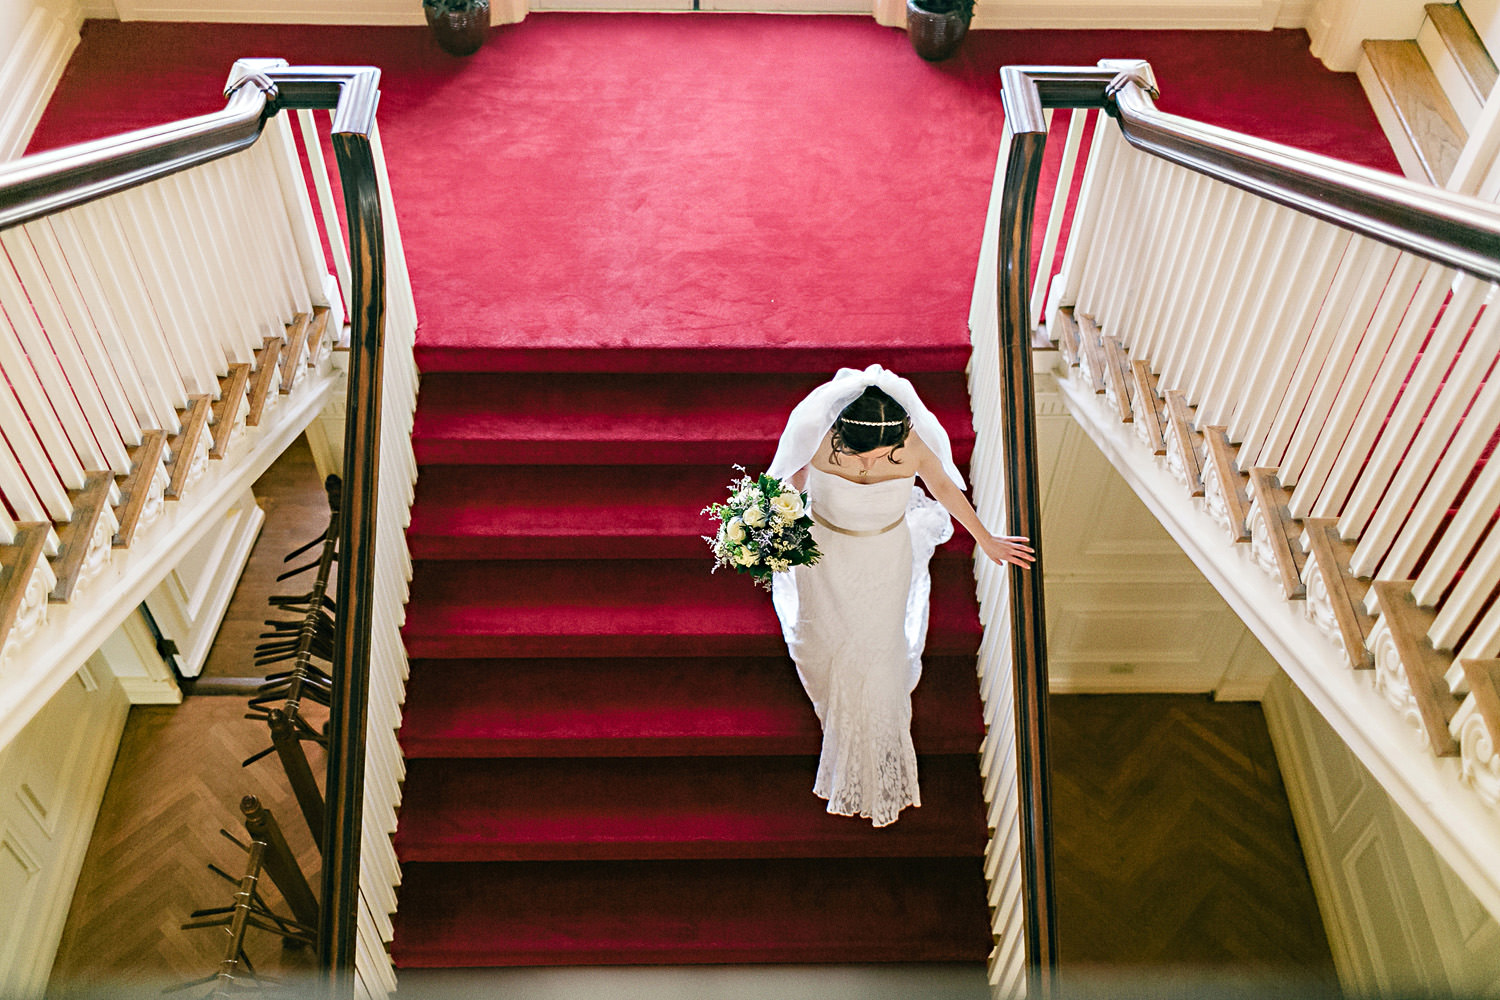 Bride walks down a red velvet staircase.